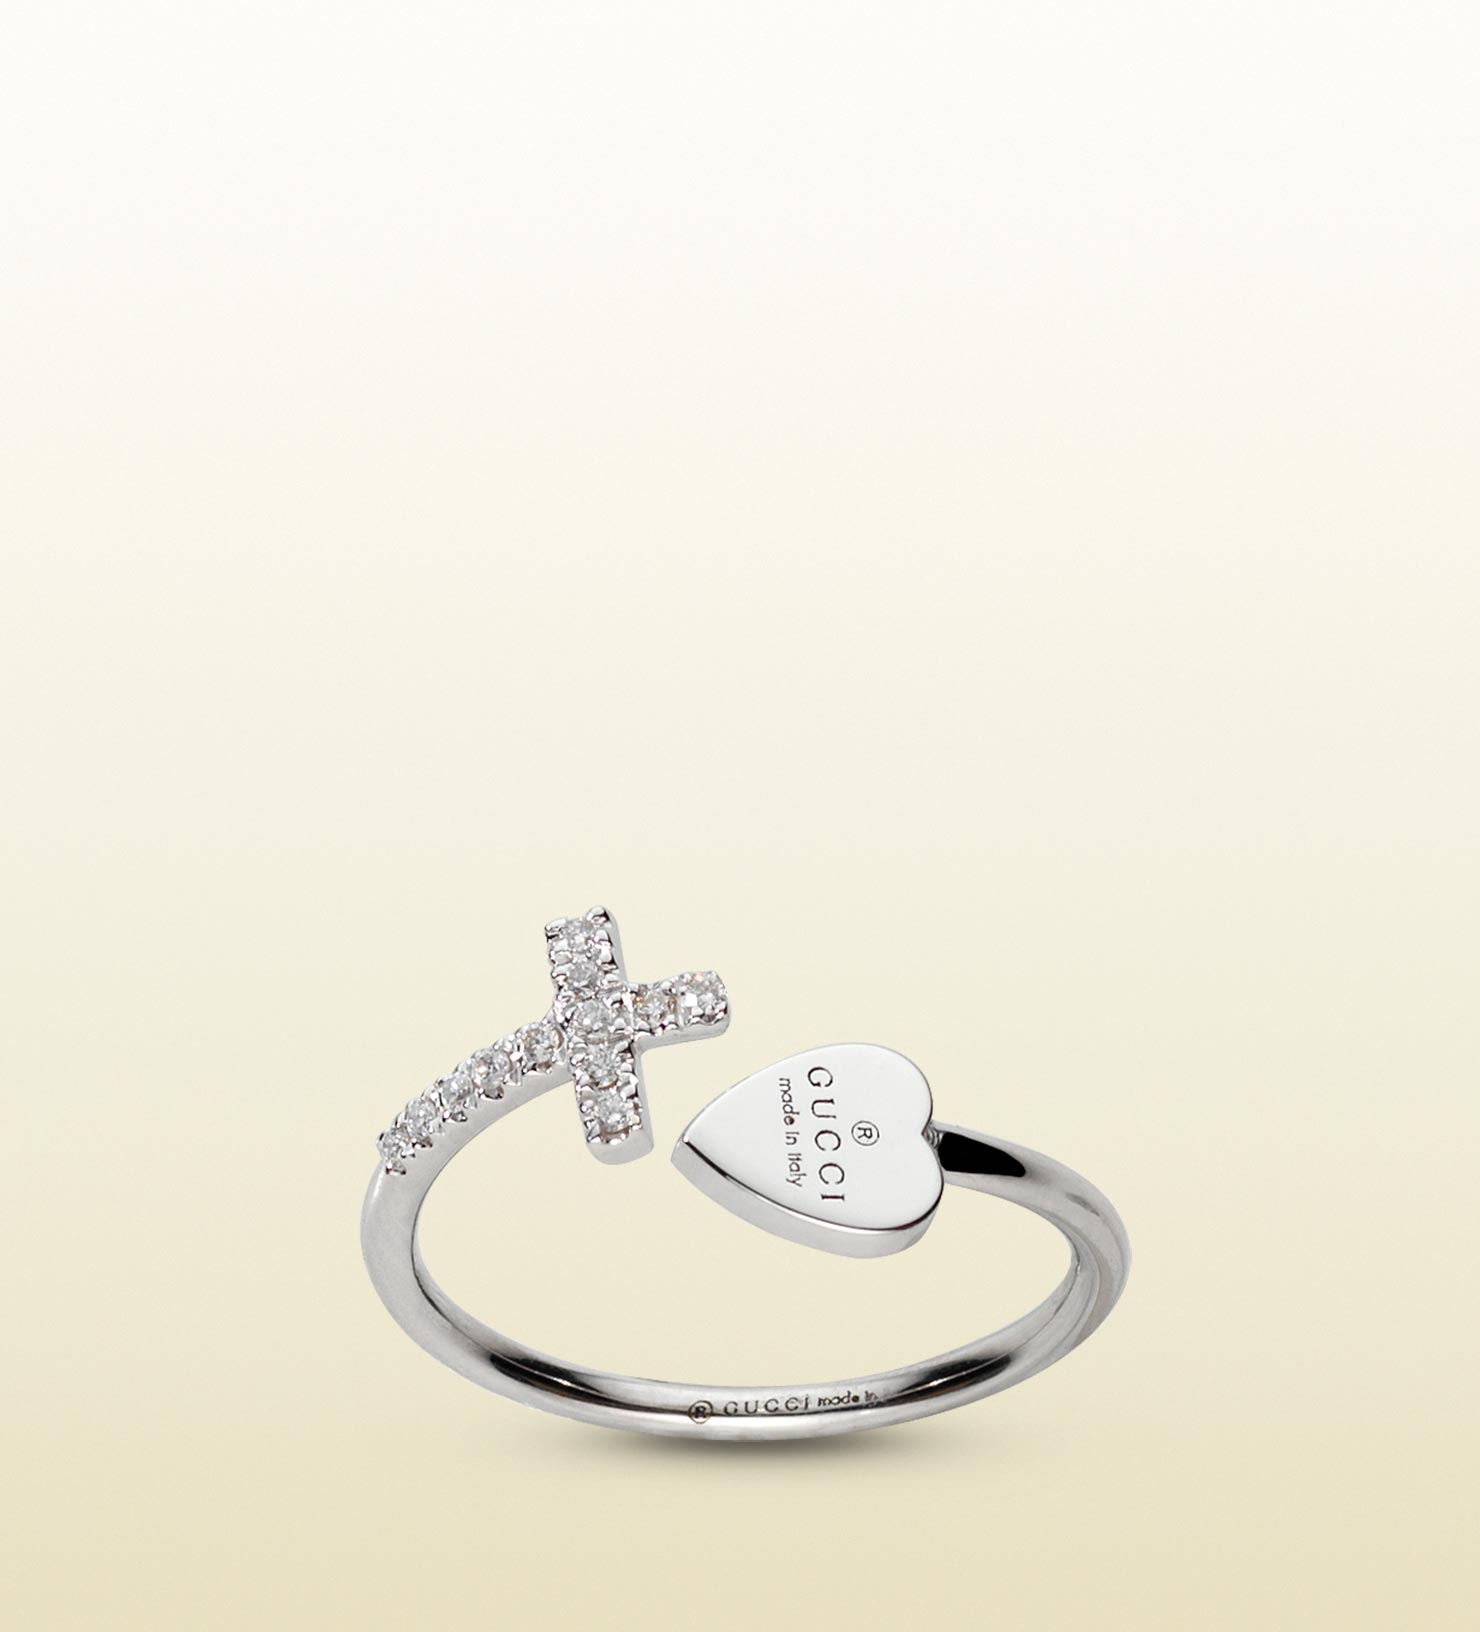 Gucci Ring With Cross And Trademark Engraved Heart In